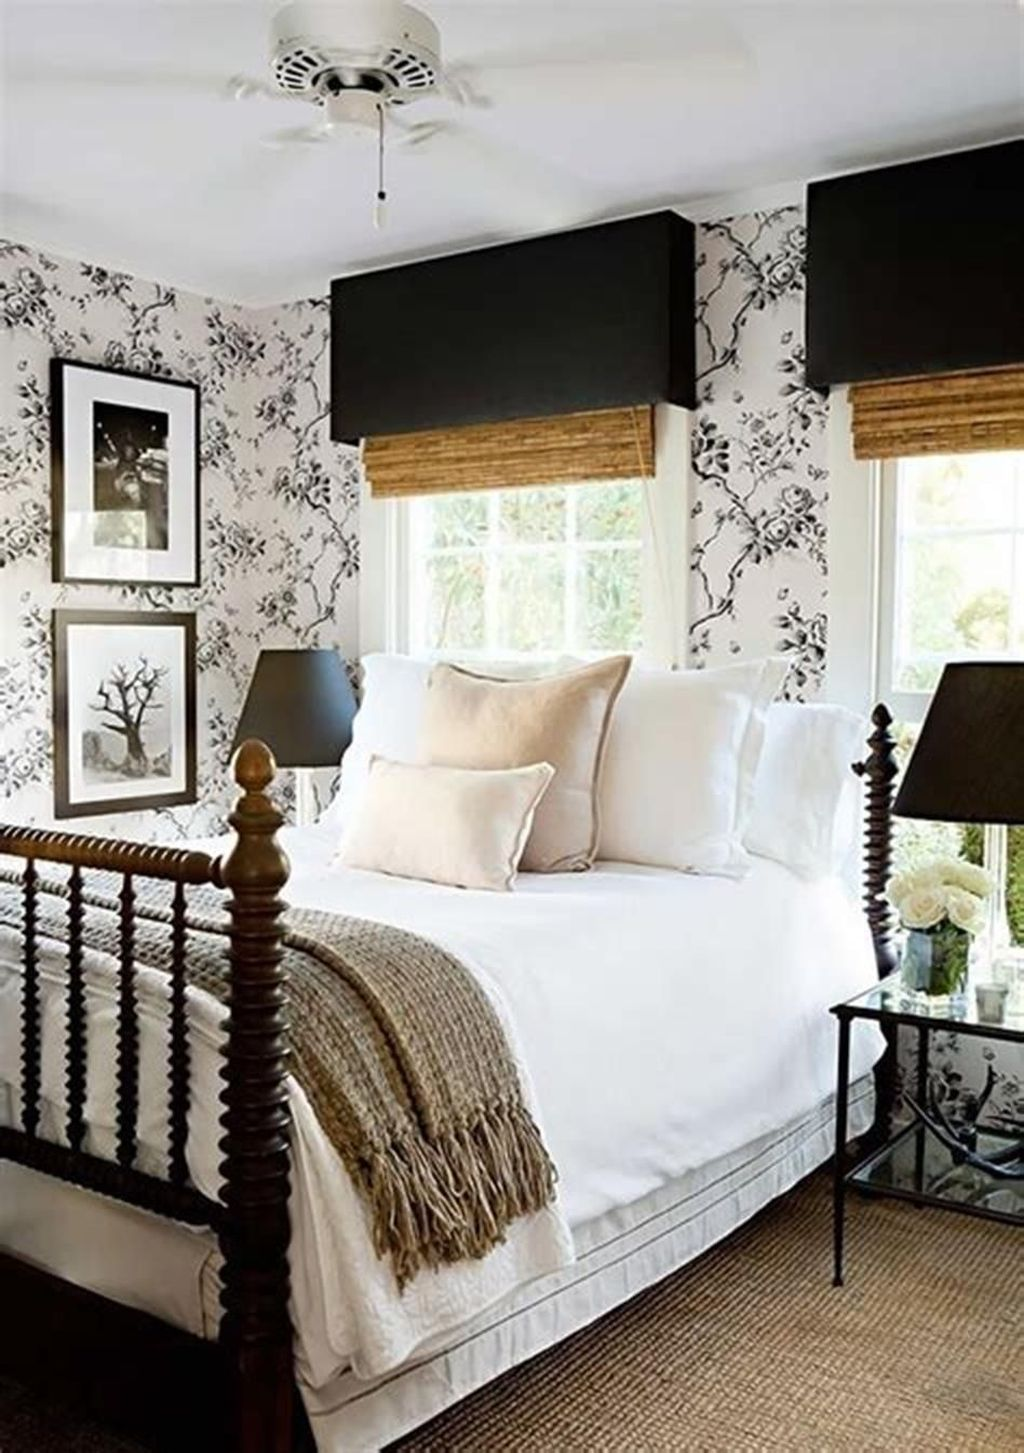 The Best Small Master Bedroom Design Ideas WIth Farmhouse Style 19